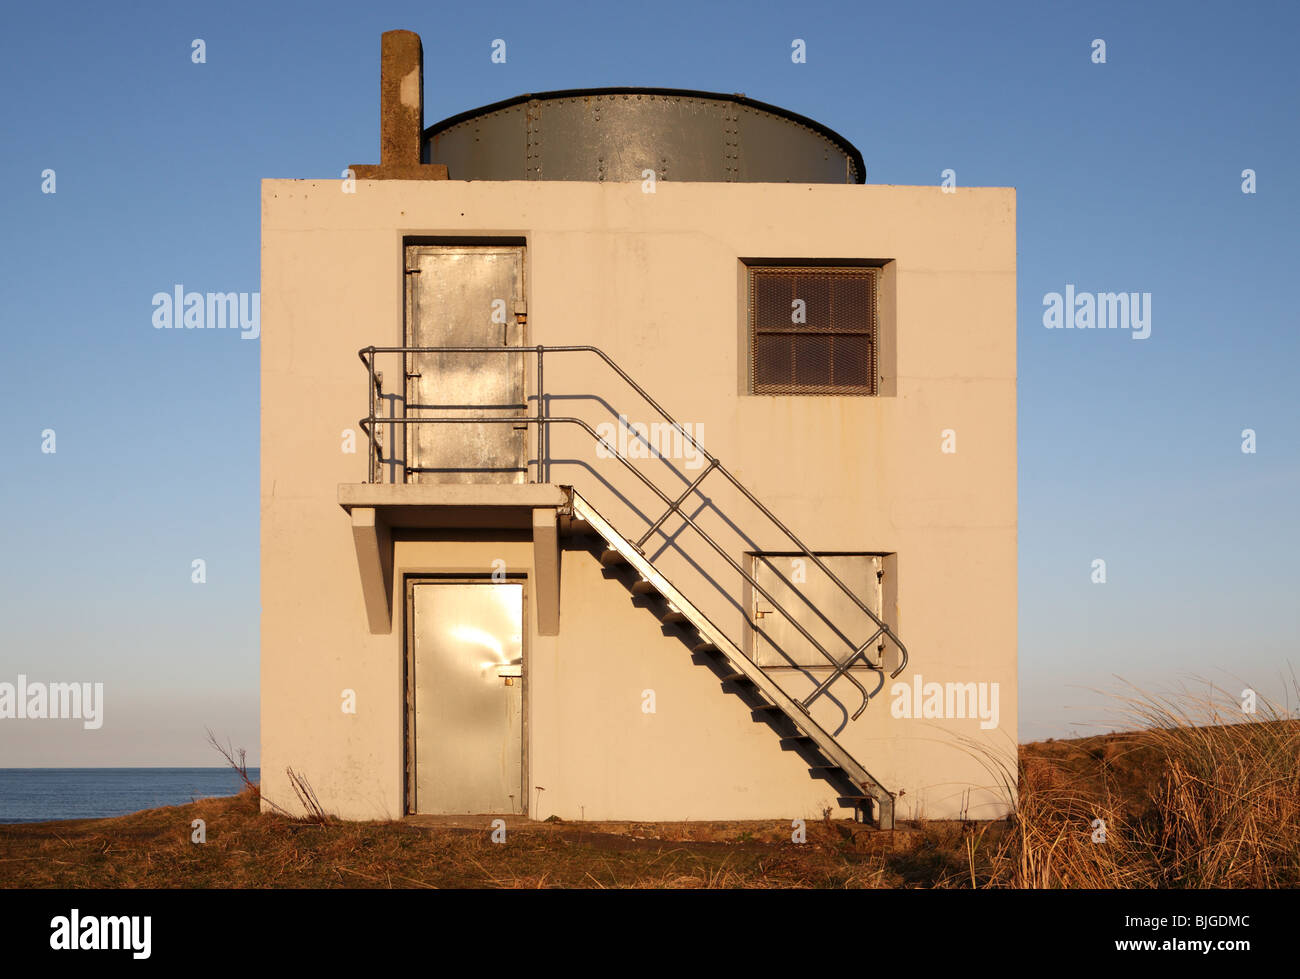 A rangefinder tower at the Blyth battery , Northumberland, England, UK - Stock Image